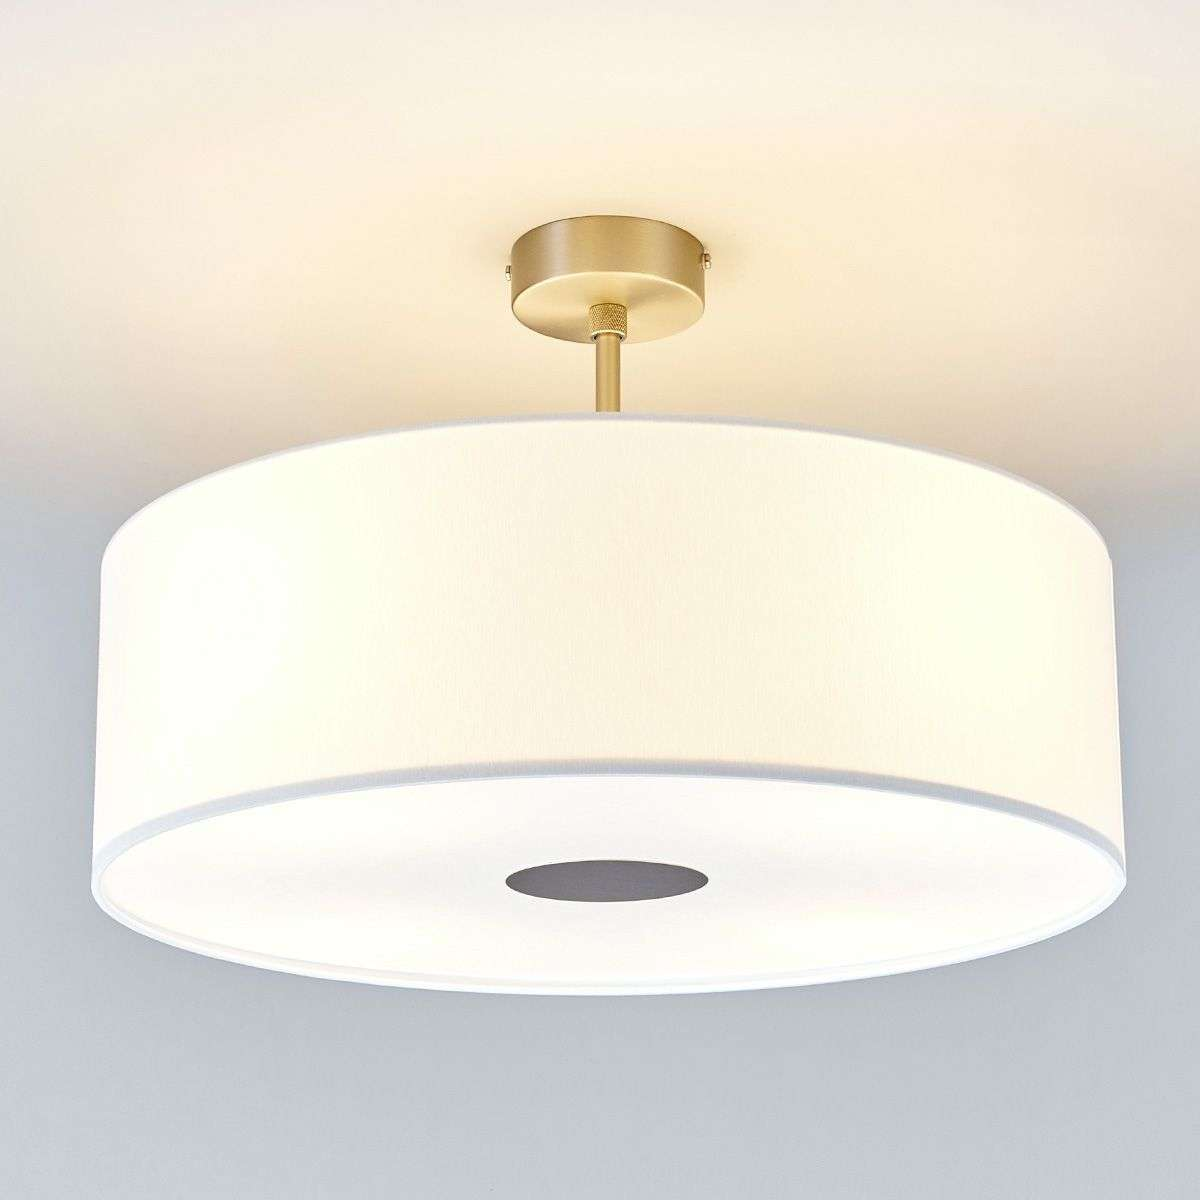 Ceiling Lights Germany : White gala led ceiling light made in germany lights